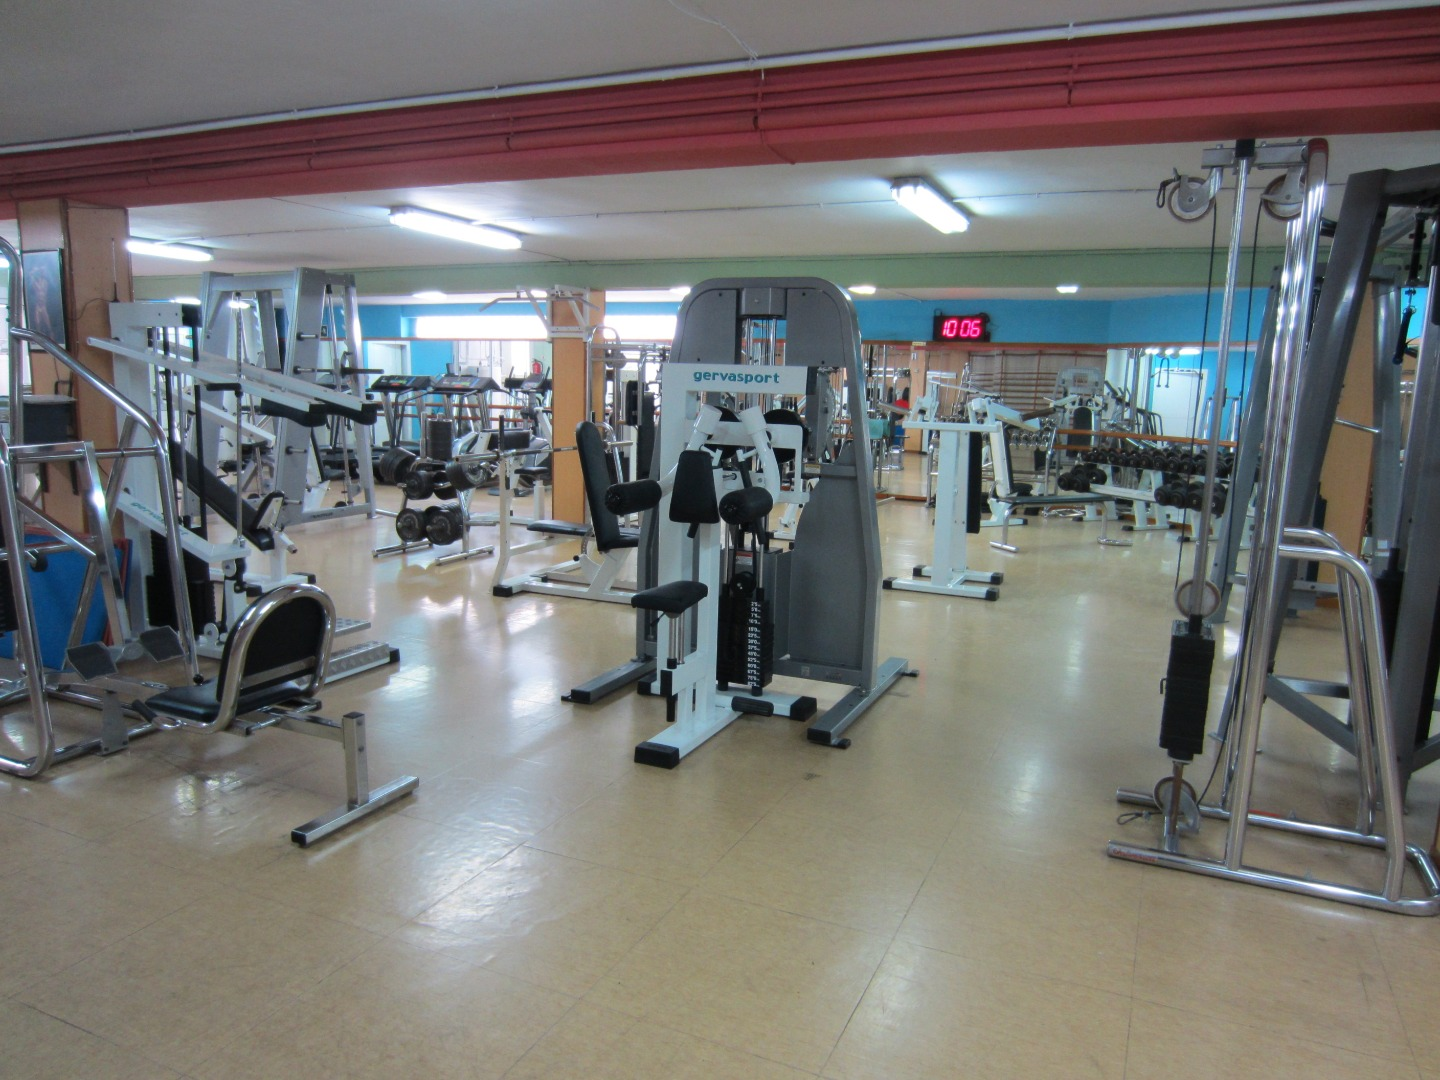 oferta gimnasio guinard center gym barcelona gymforless